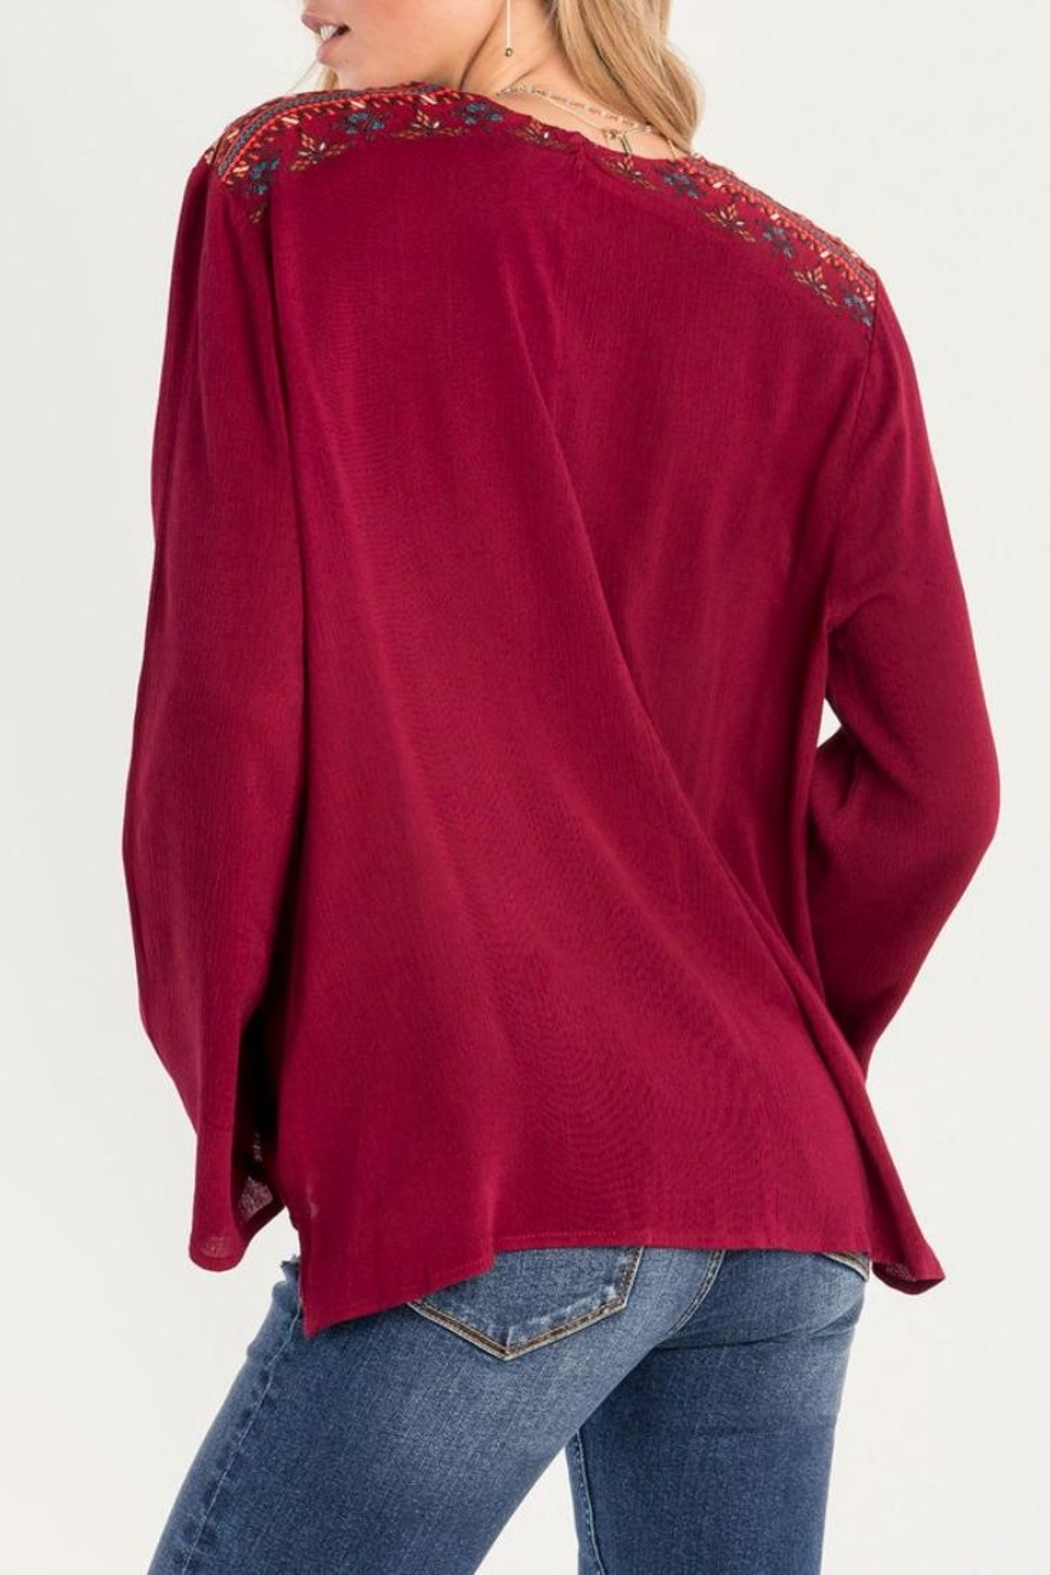 Miss Me Red Swing Blouse - Side Cropped Image